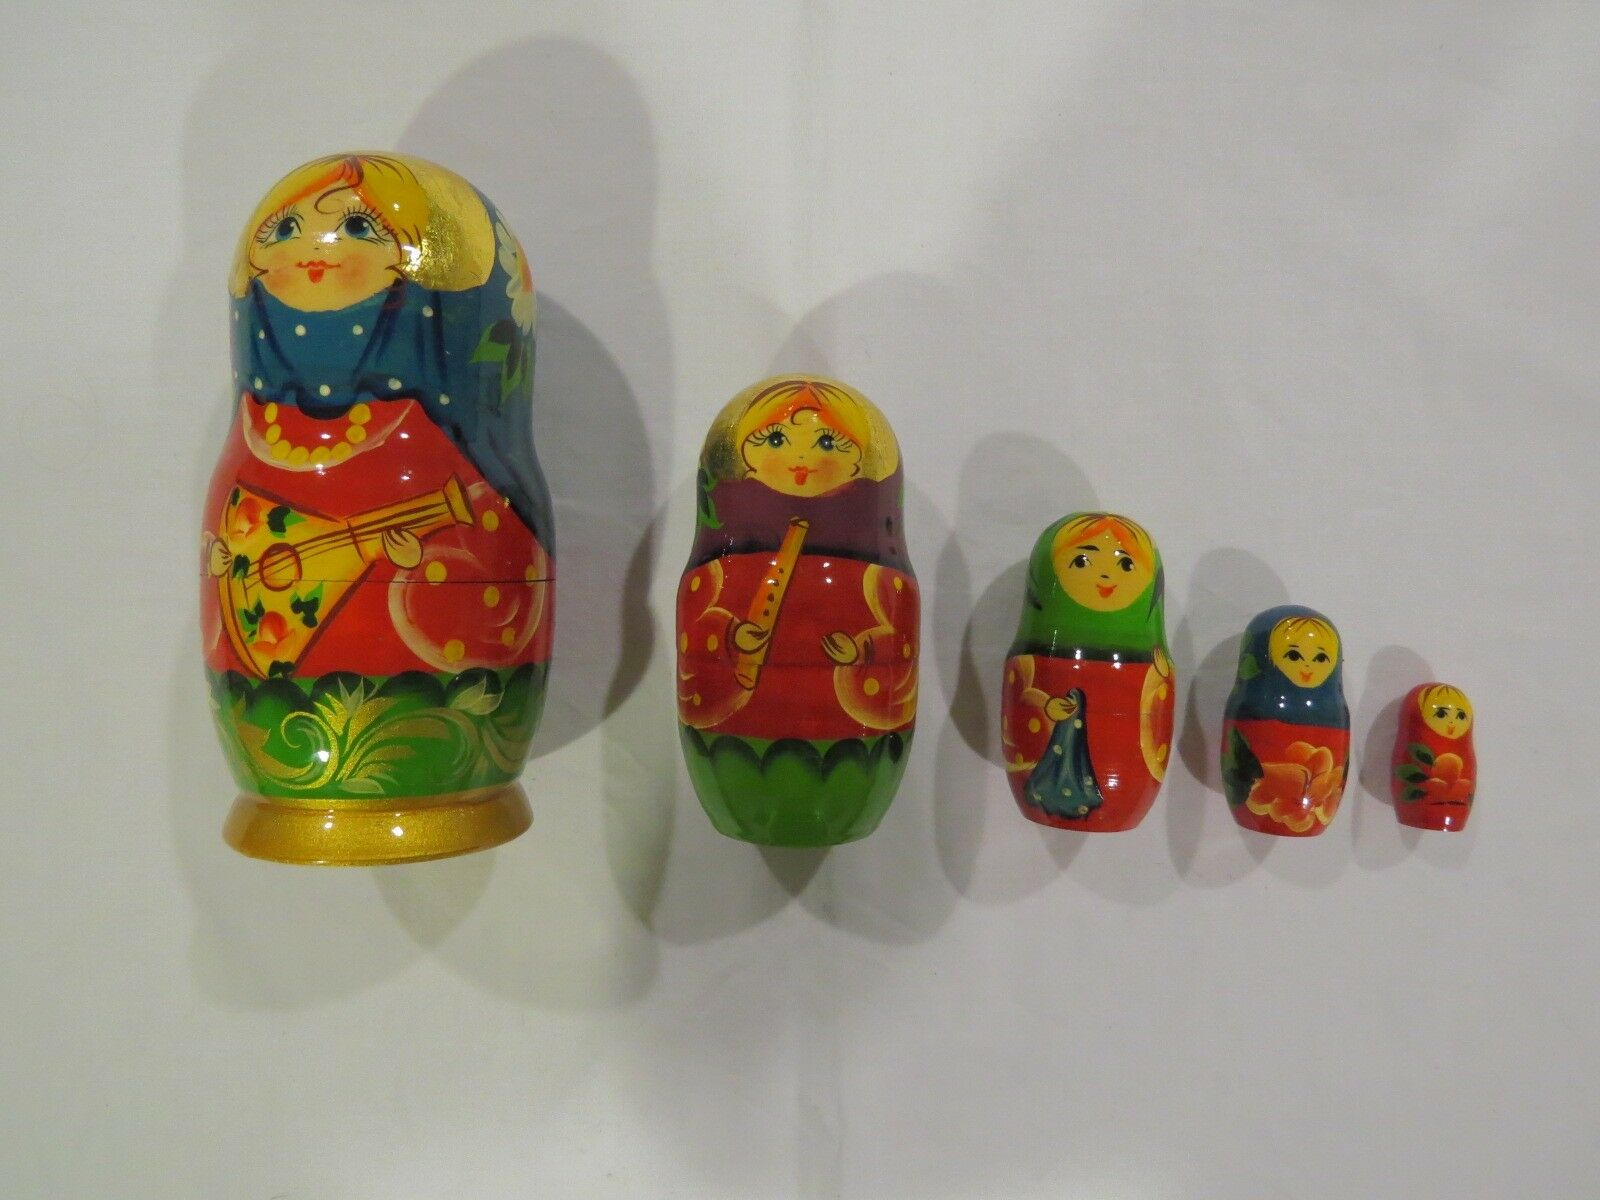 Art Russian Nesting Dolls 5 Pc. Set - Hand Painted & Signed by Russian Artist